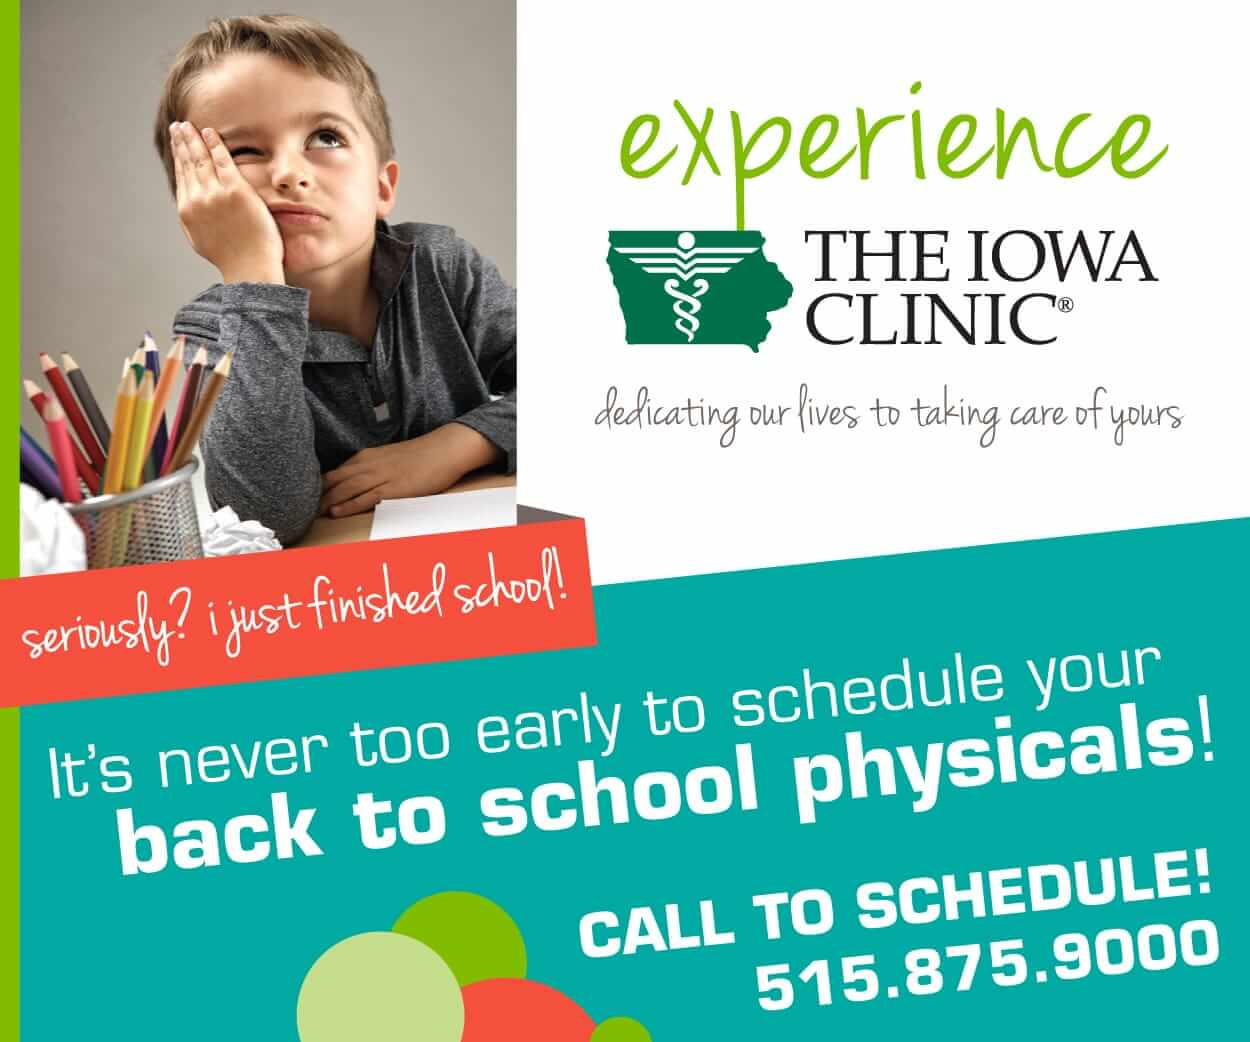 Call 515.875.9000 to schedule your back-to-school physicals